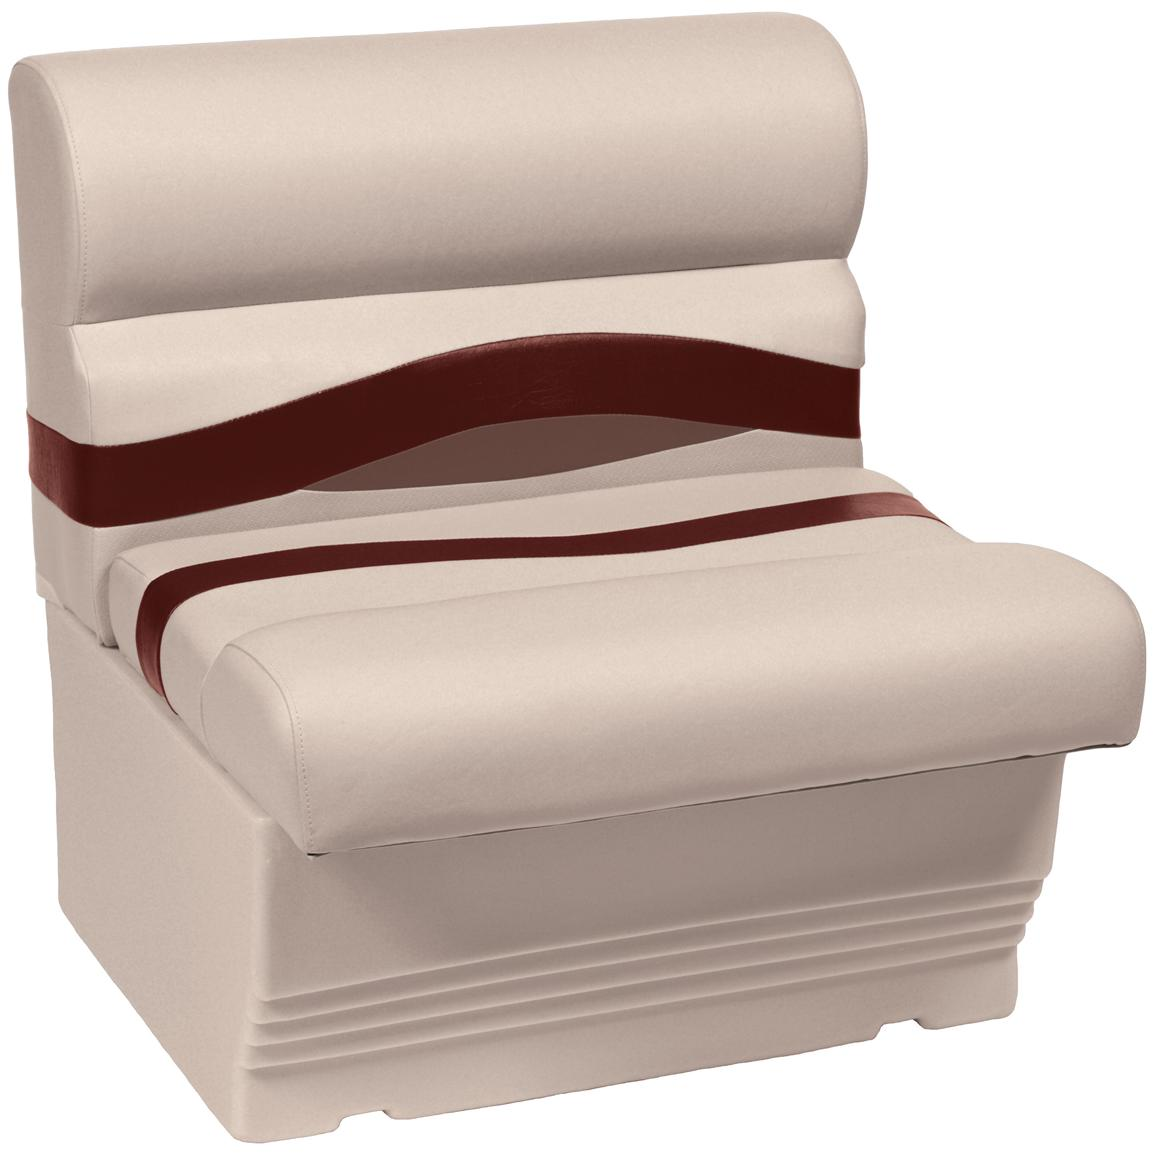 Wise® Premier 1100 Series 27 inch Pontoon Bench Seat, Color C